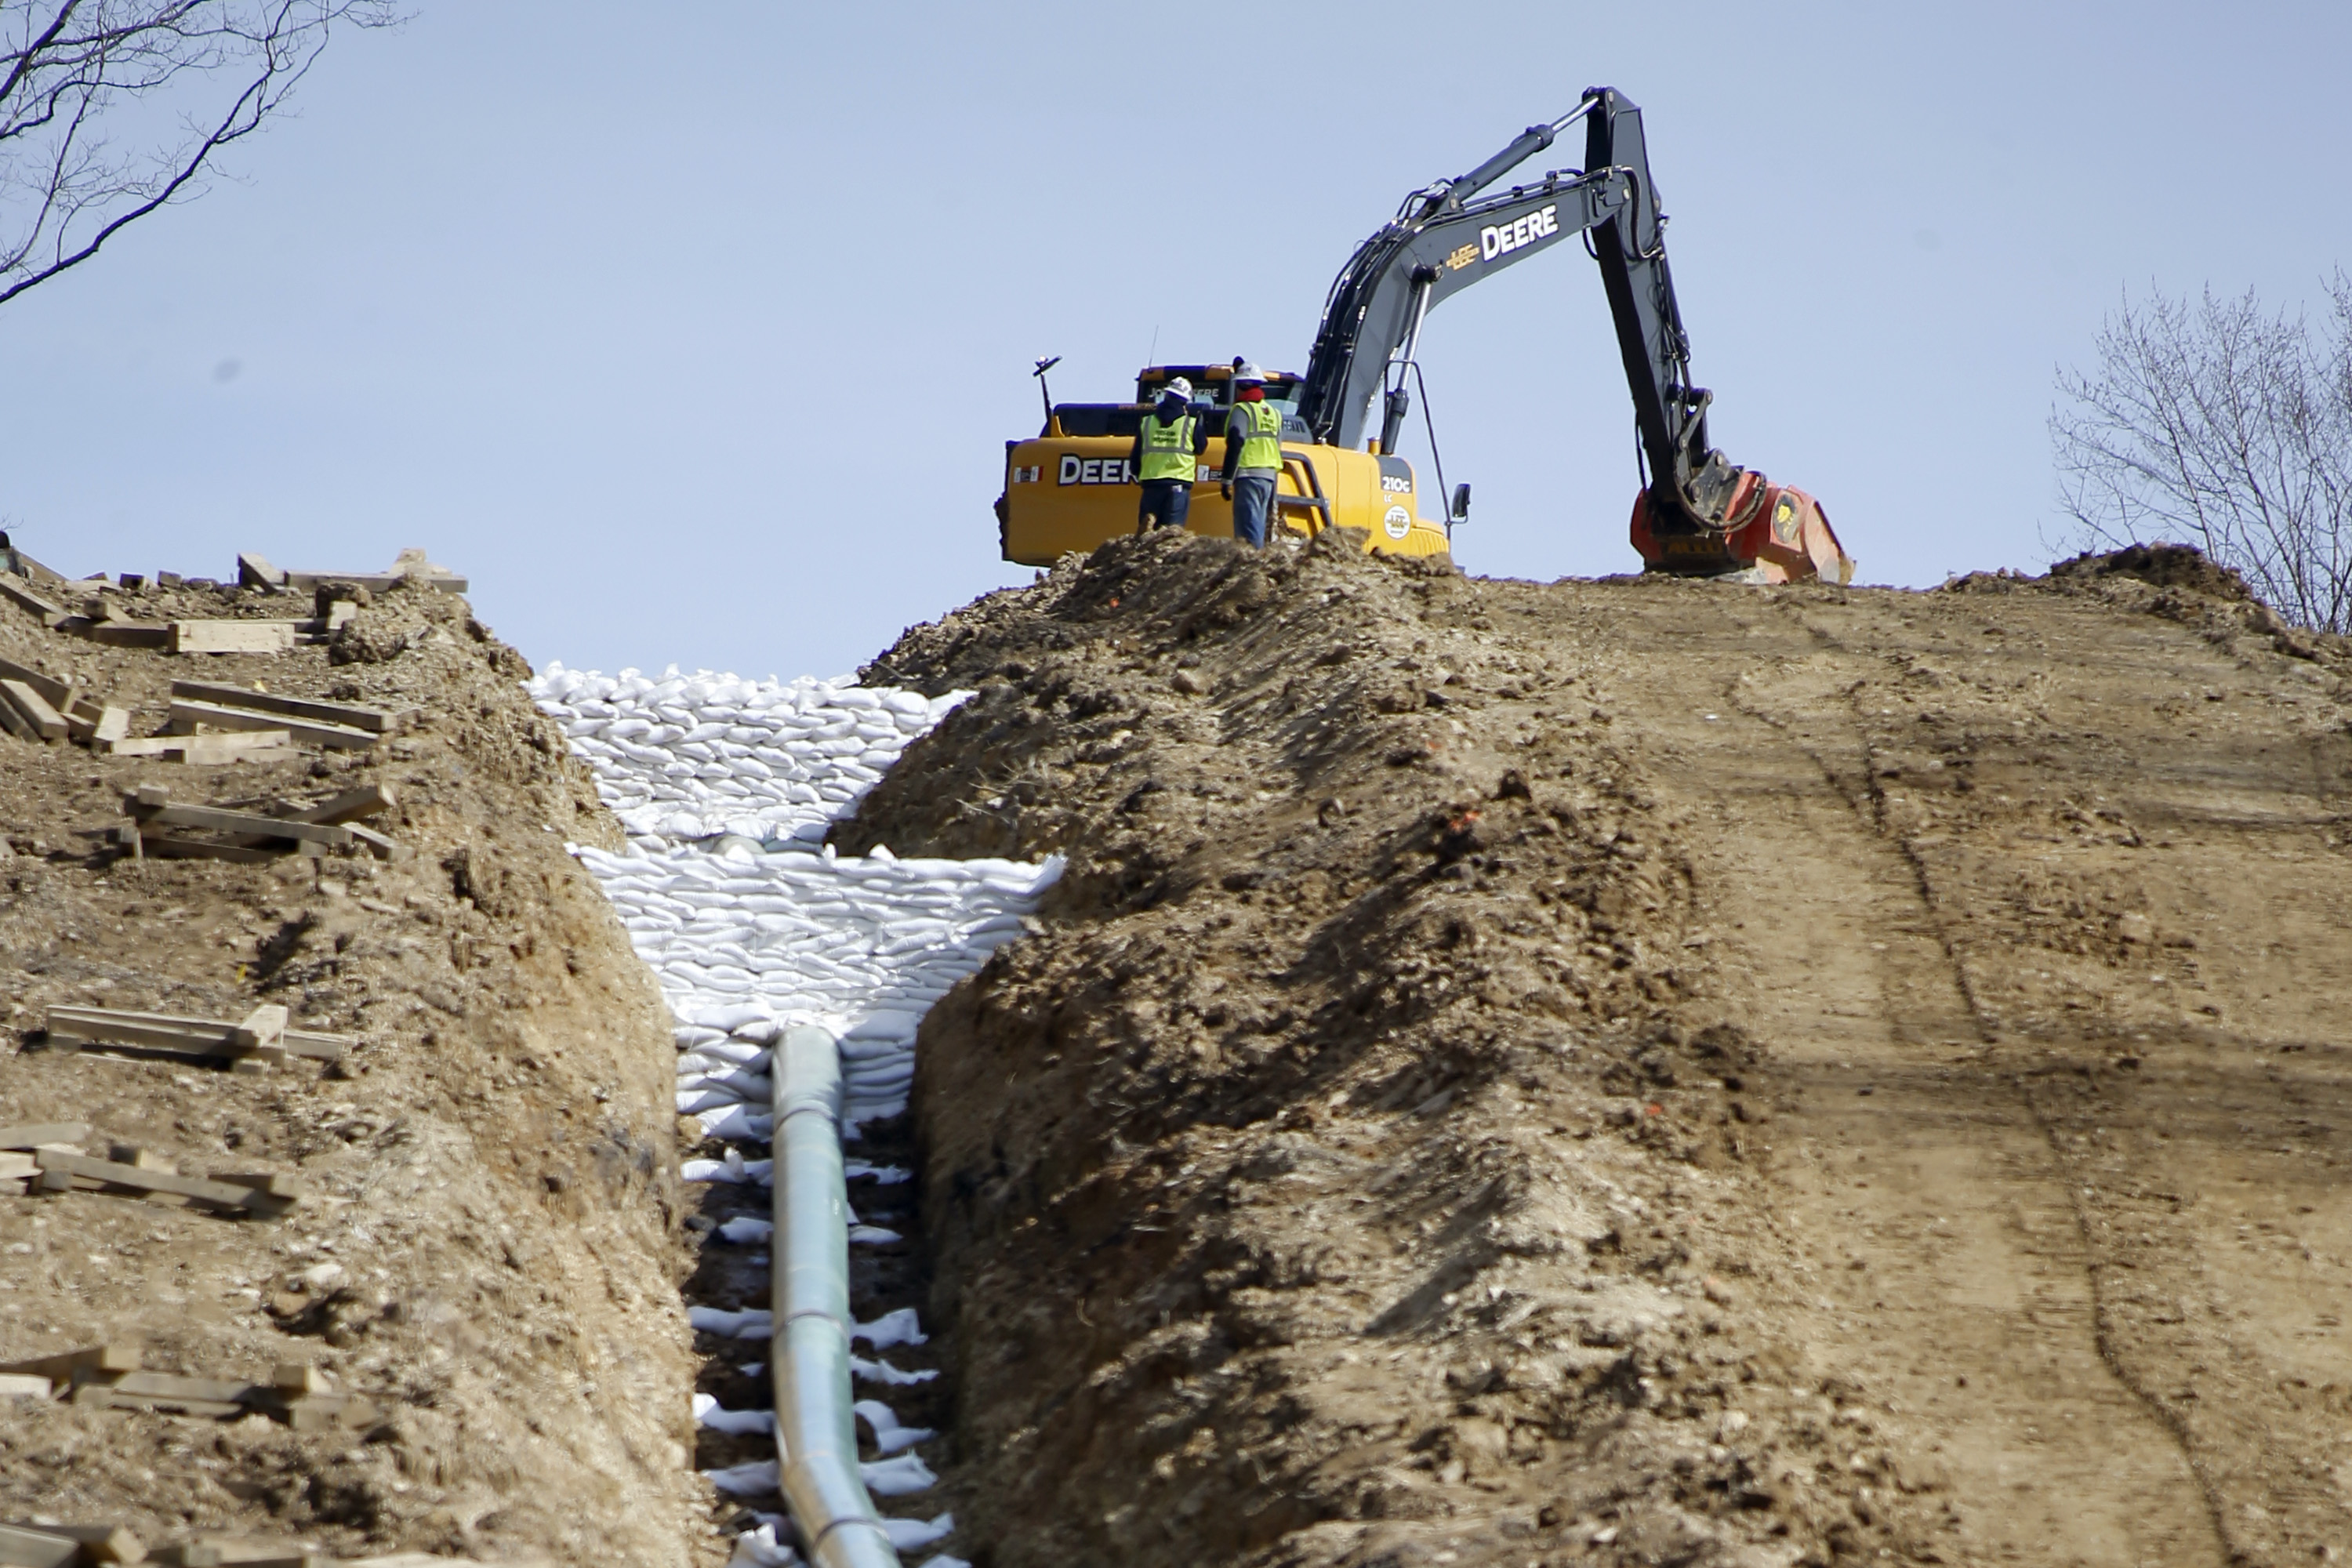 Natural Gas Pipeline Installation : Attorneys advise landowners to get involved in pipeline